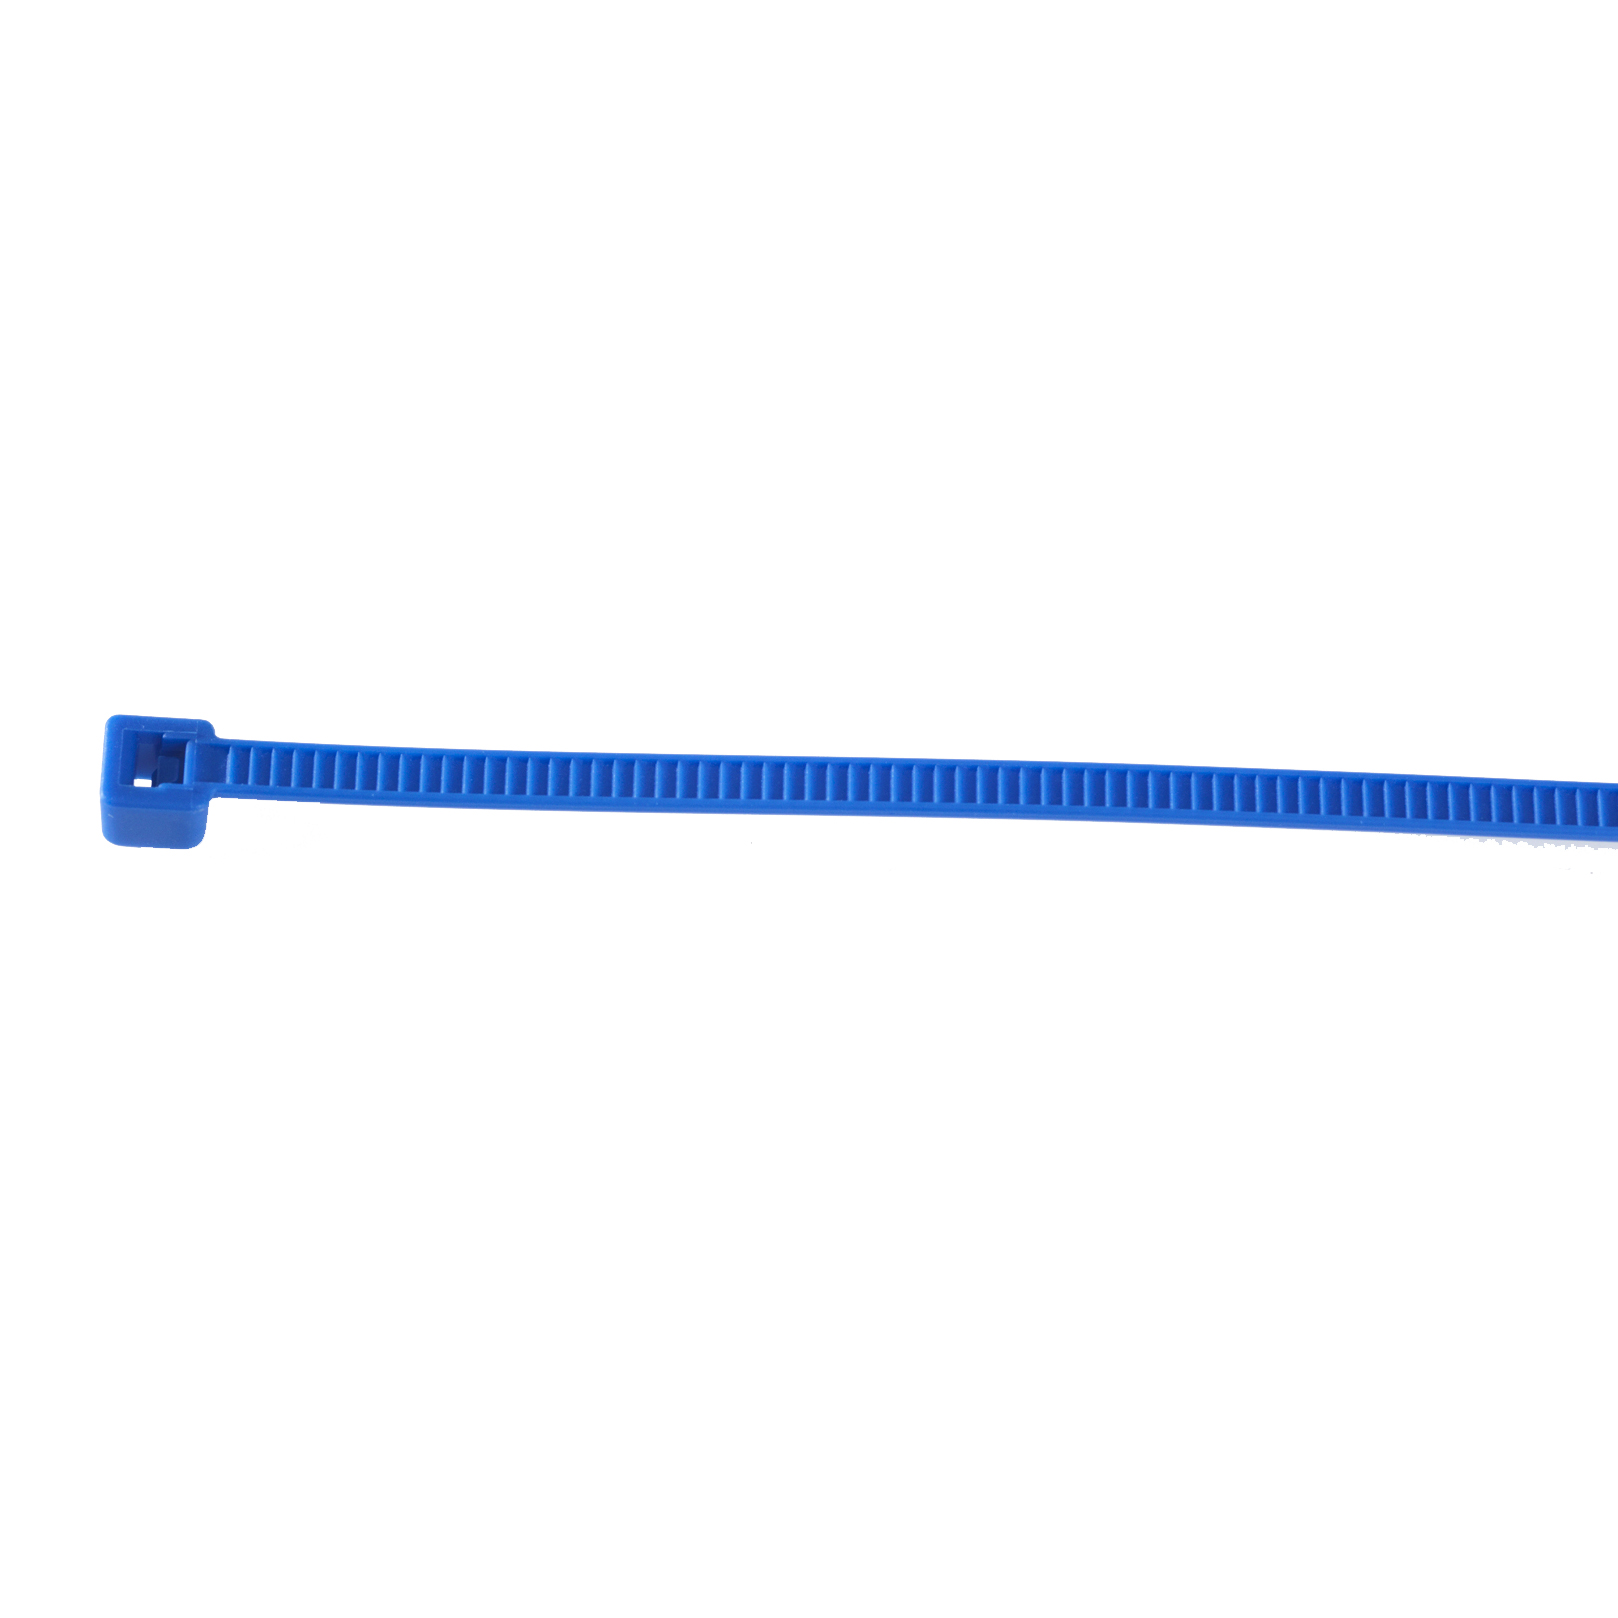 Blue Cable Tie Image